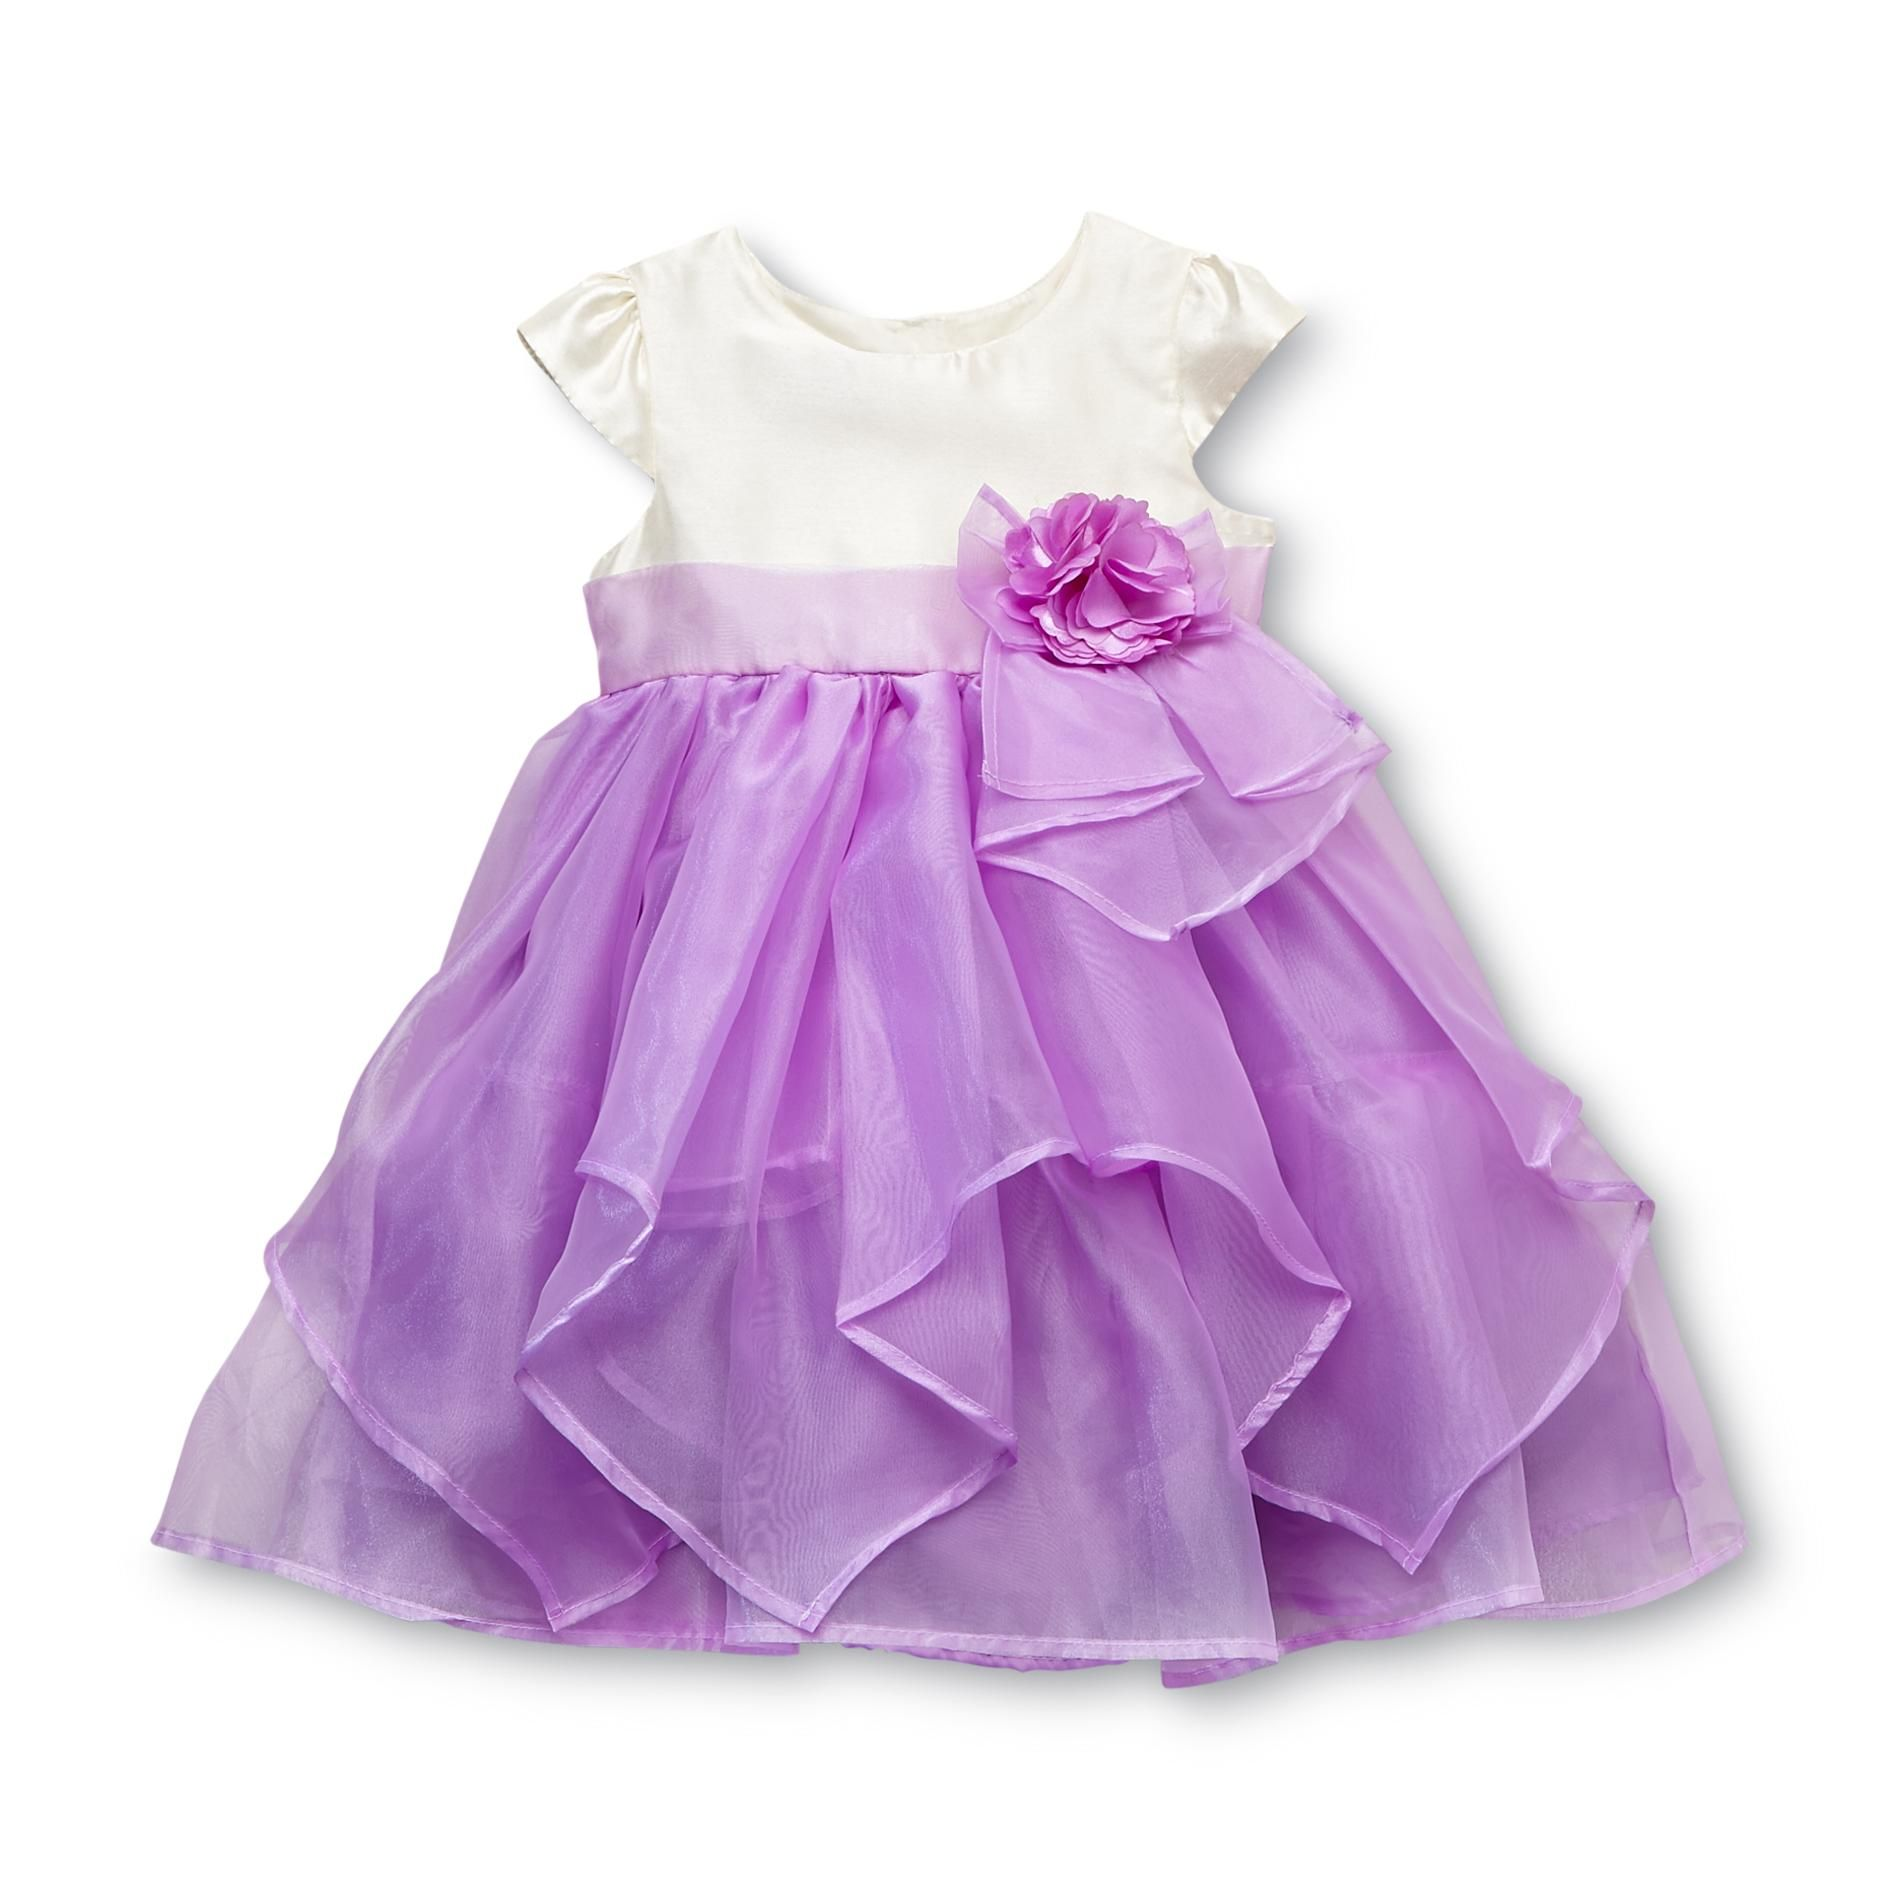 Kmart Baby Girl Dresses Newest and Cutest Baby Clothing Collection